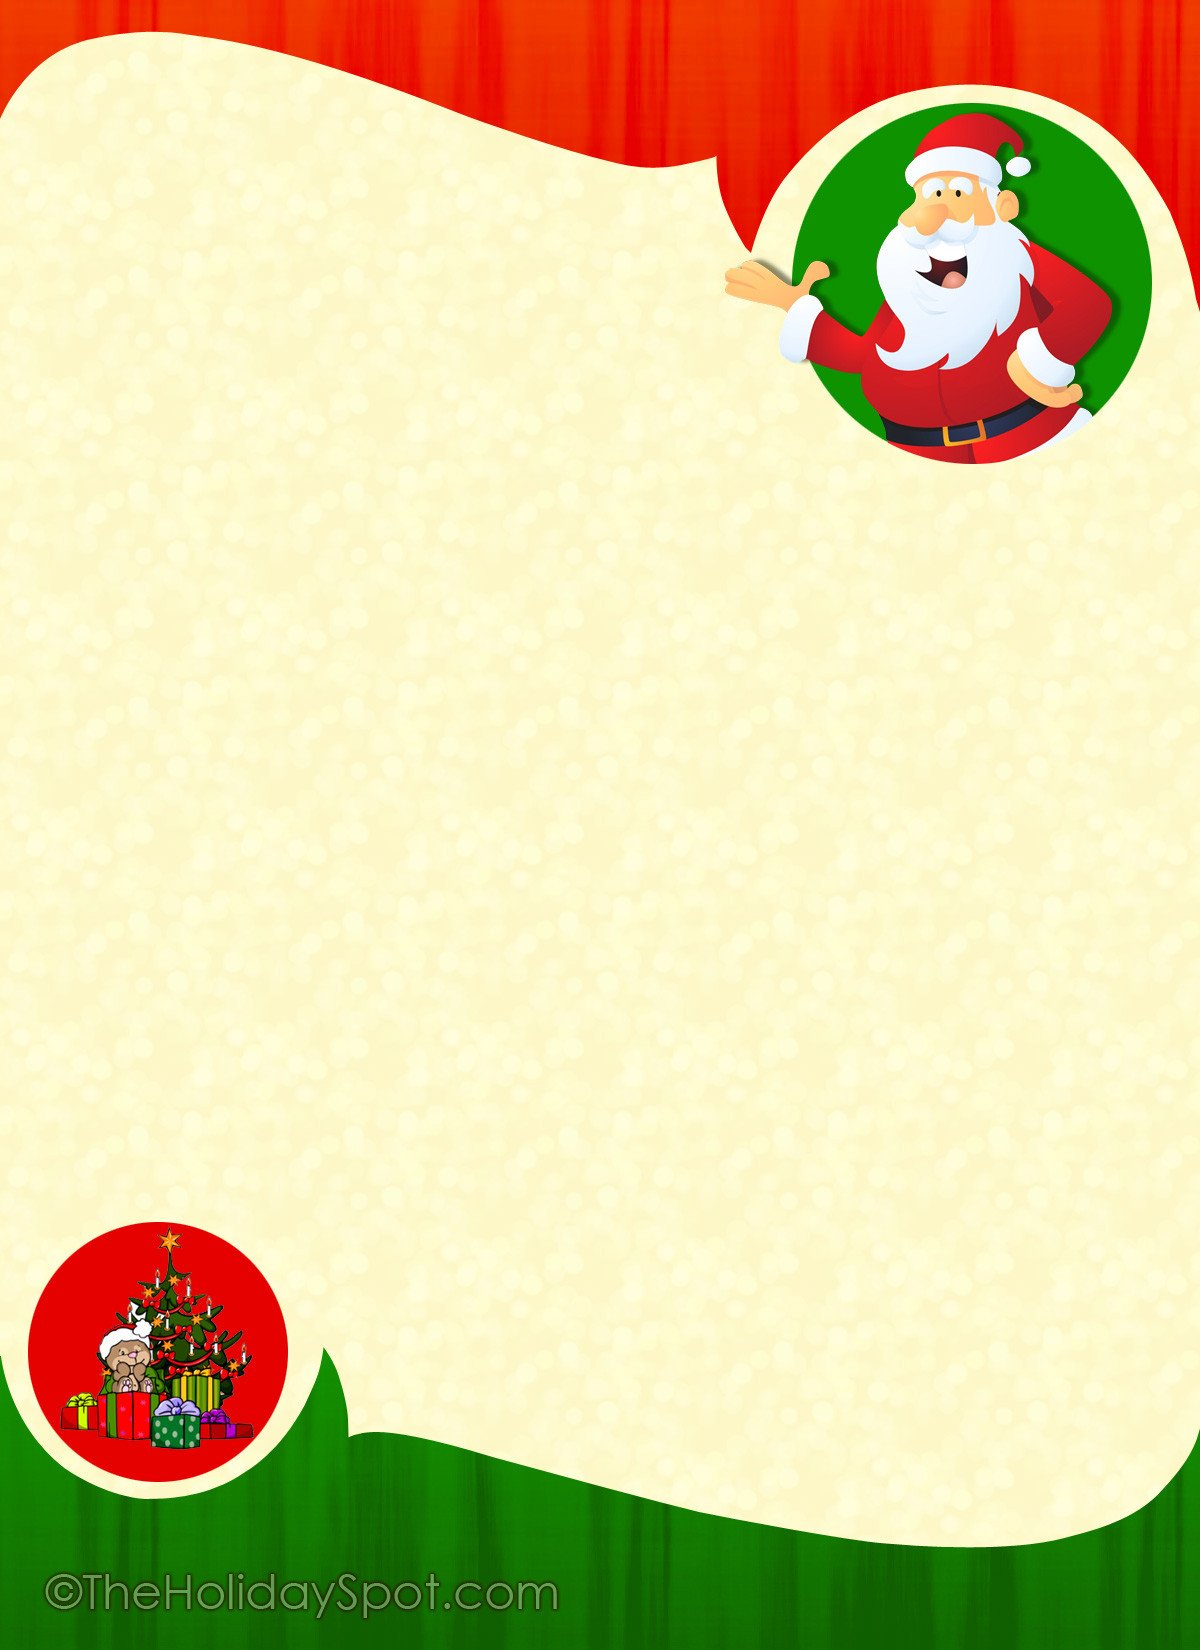 Free Holiday Stationery Templates Free Free Downloadable Stationery Borders Download Free